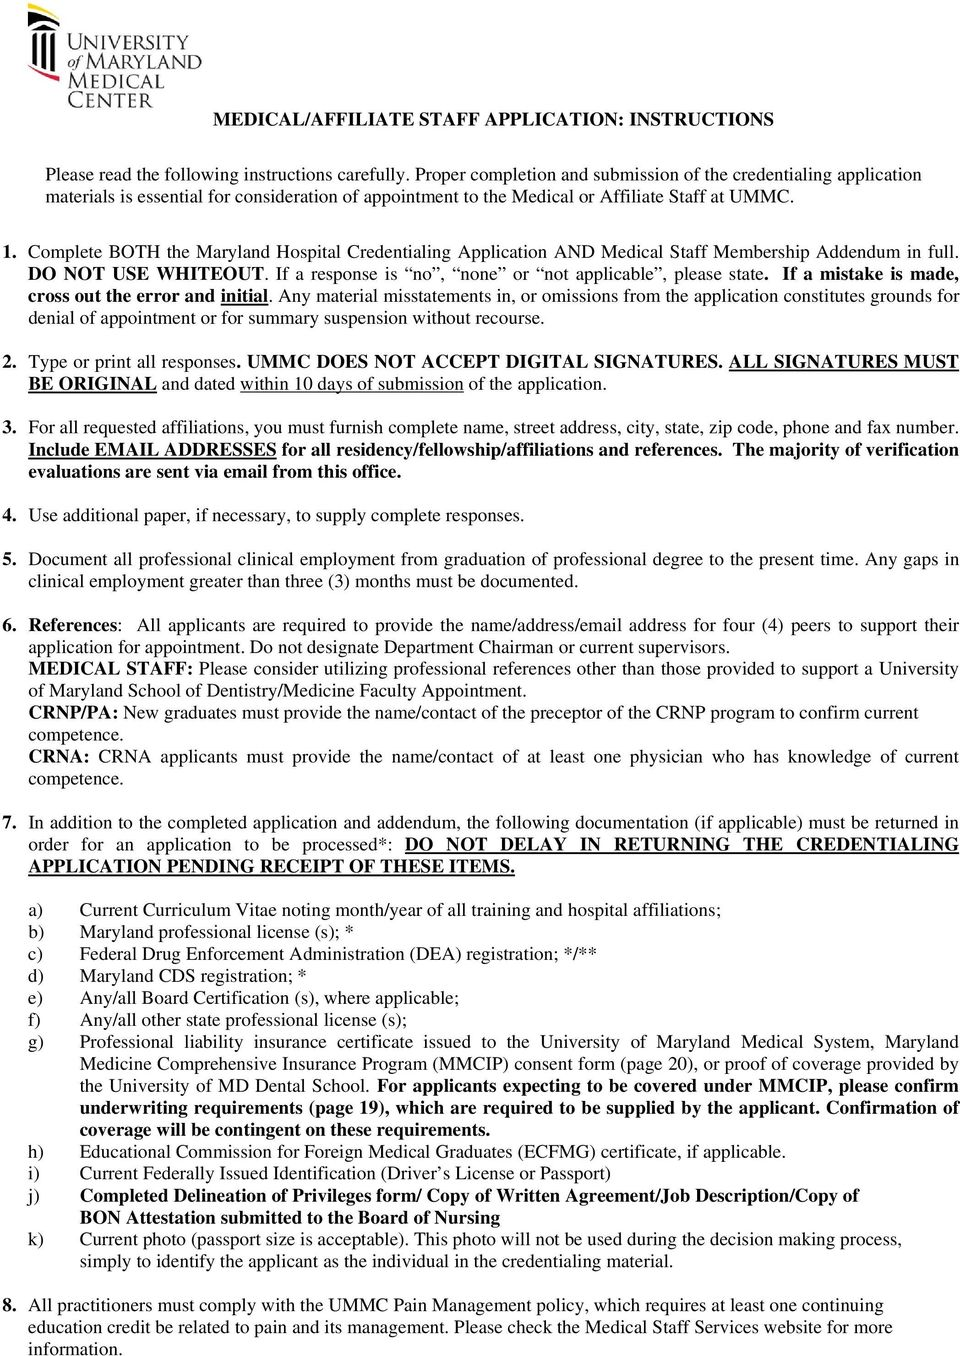 Complete BOTH the Maryland Hospital Credentialing Application AND Medical Staff Membership Addendum in full. DO NOT USE WHITEOUT. If a response is no, none or not applicable, please state.